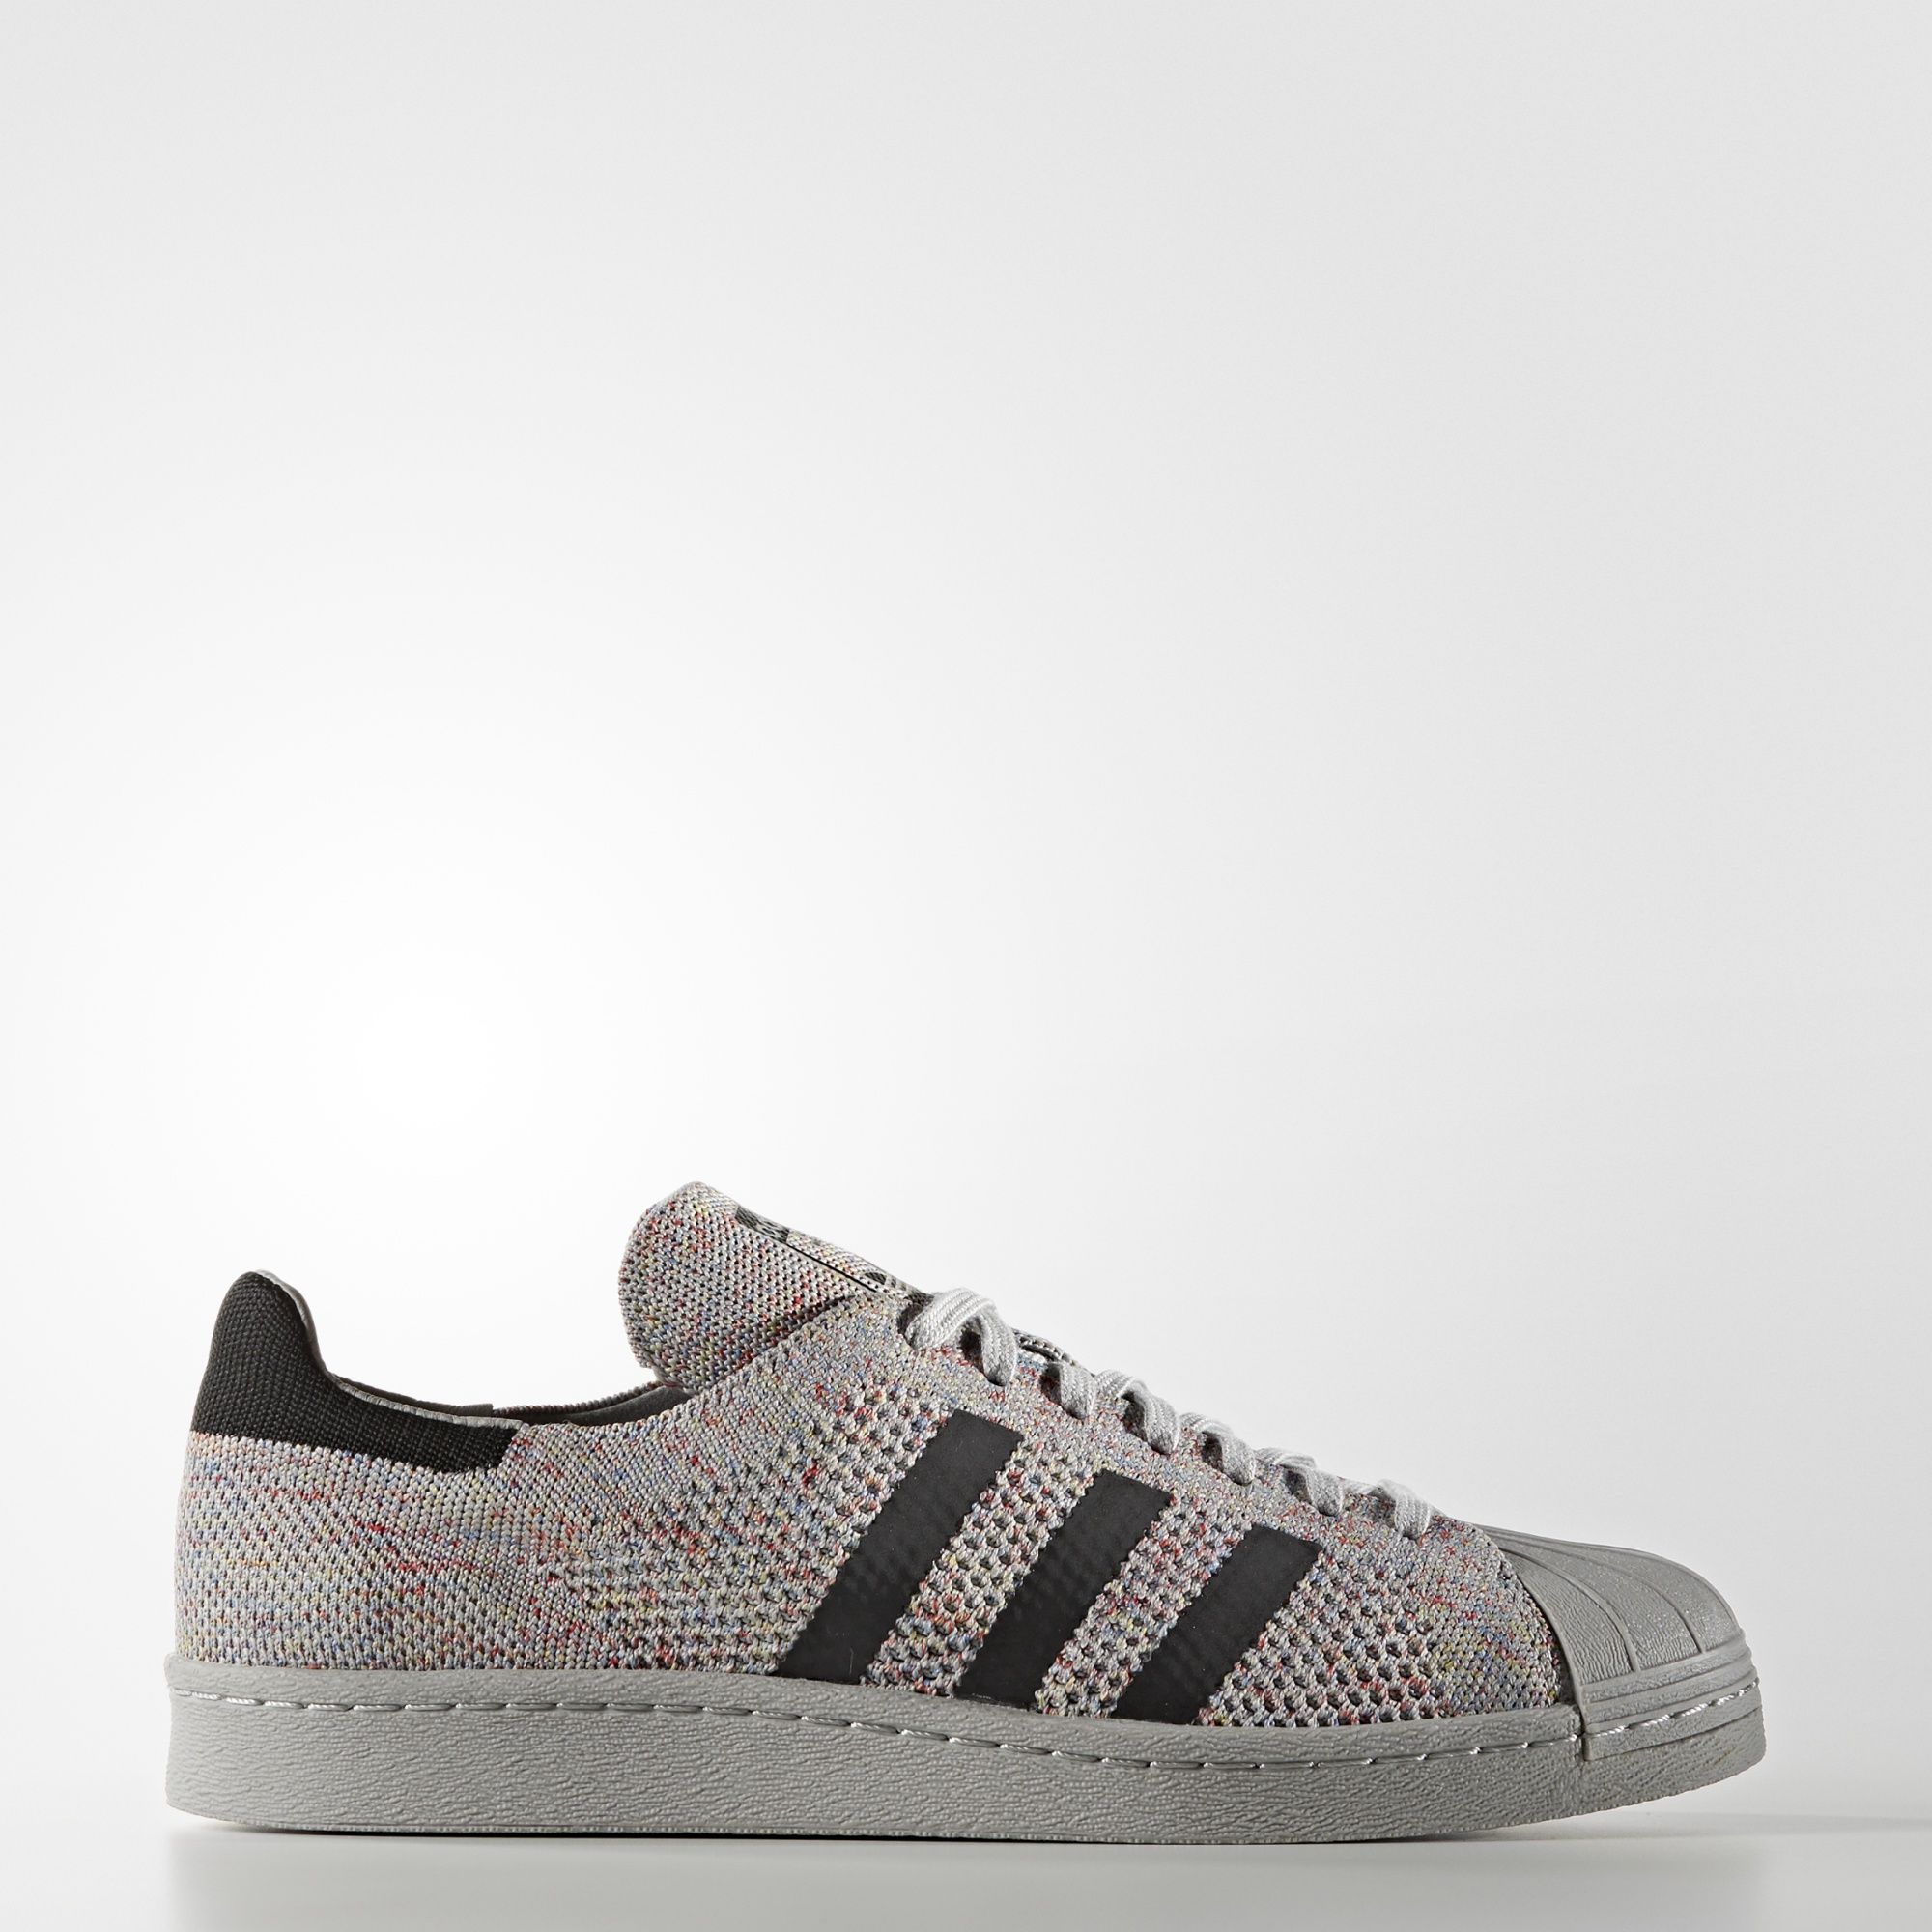 adidas Superstar 80s Primeknit Mens Multi